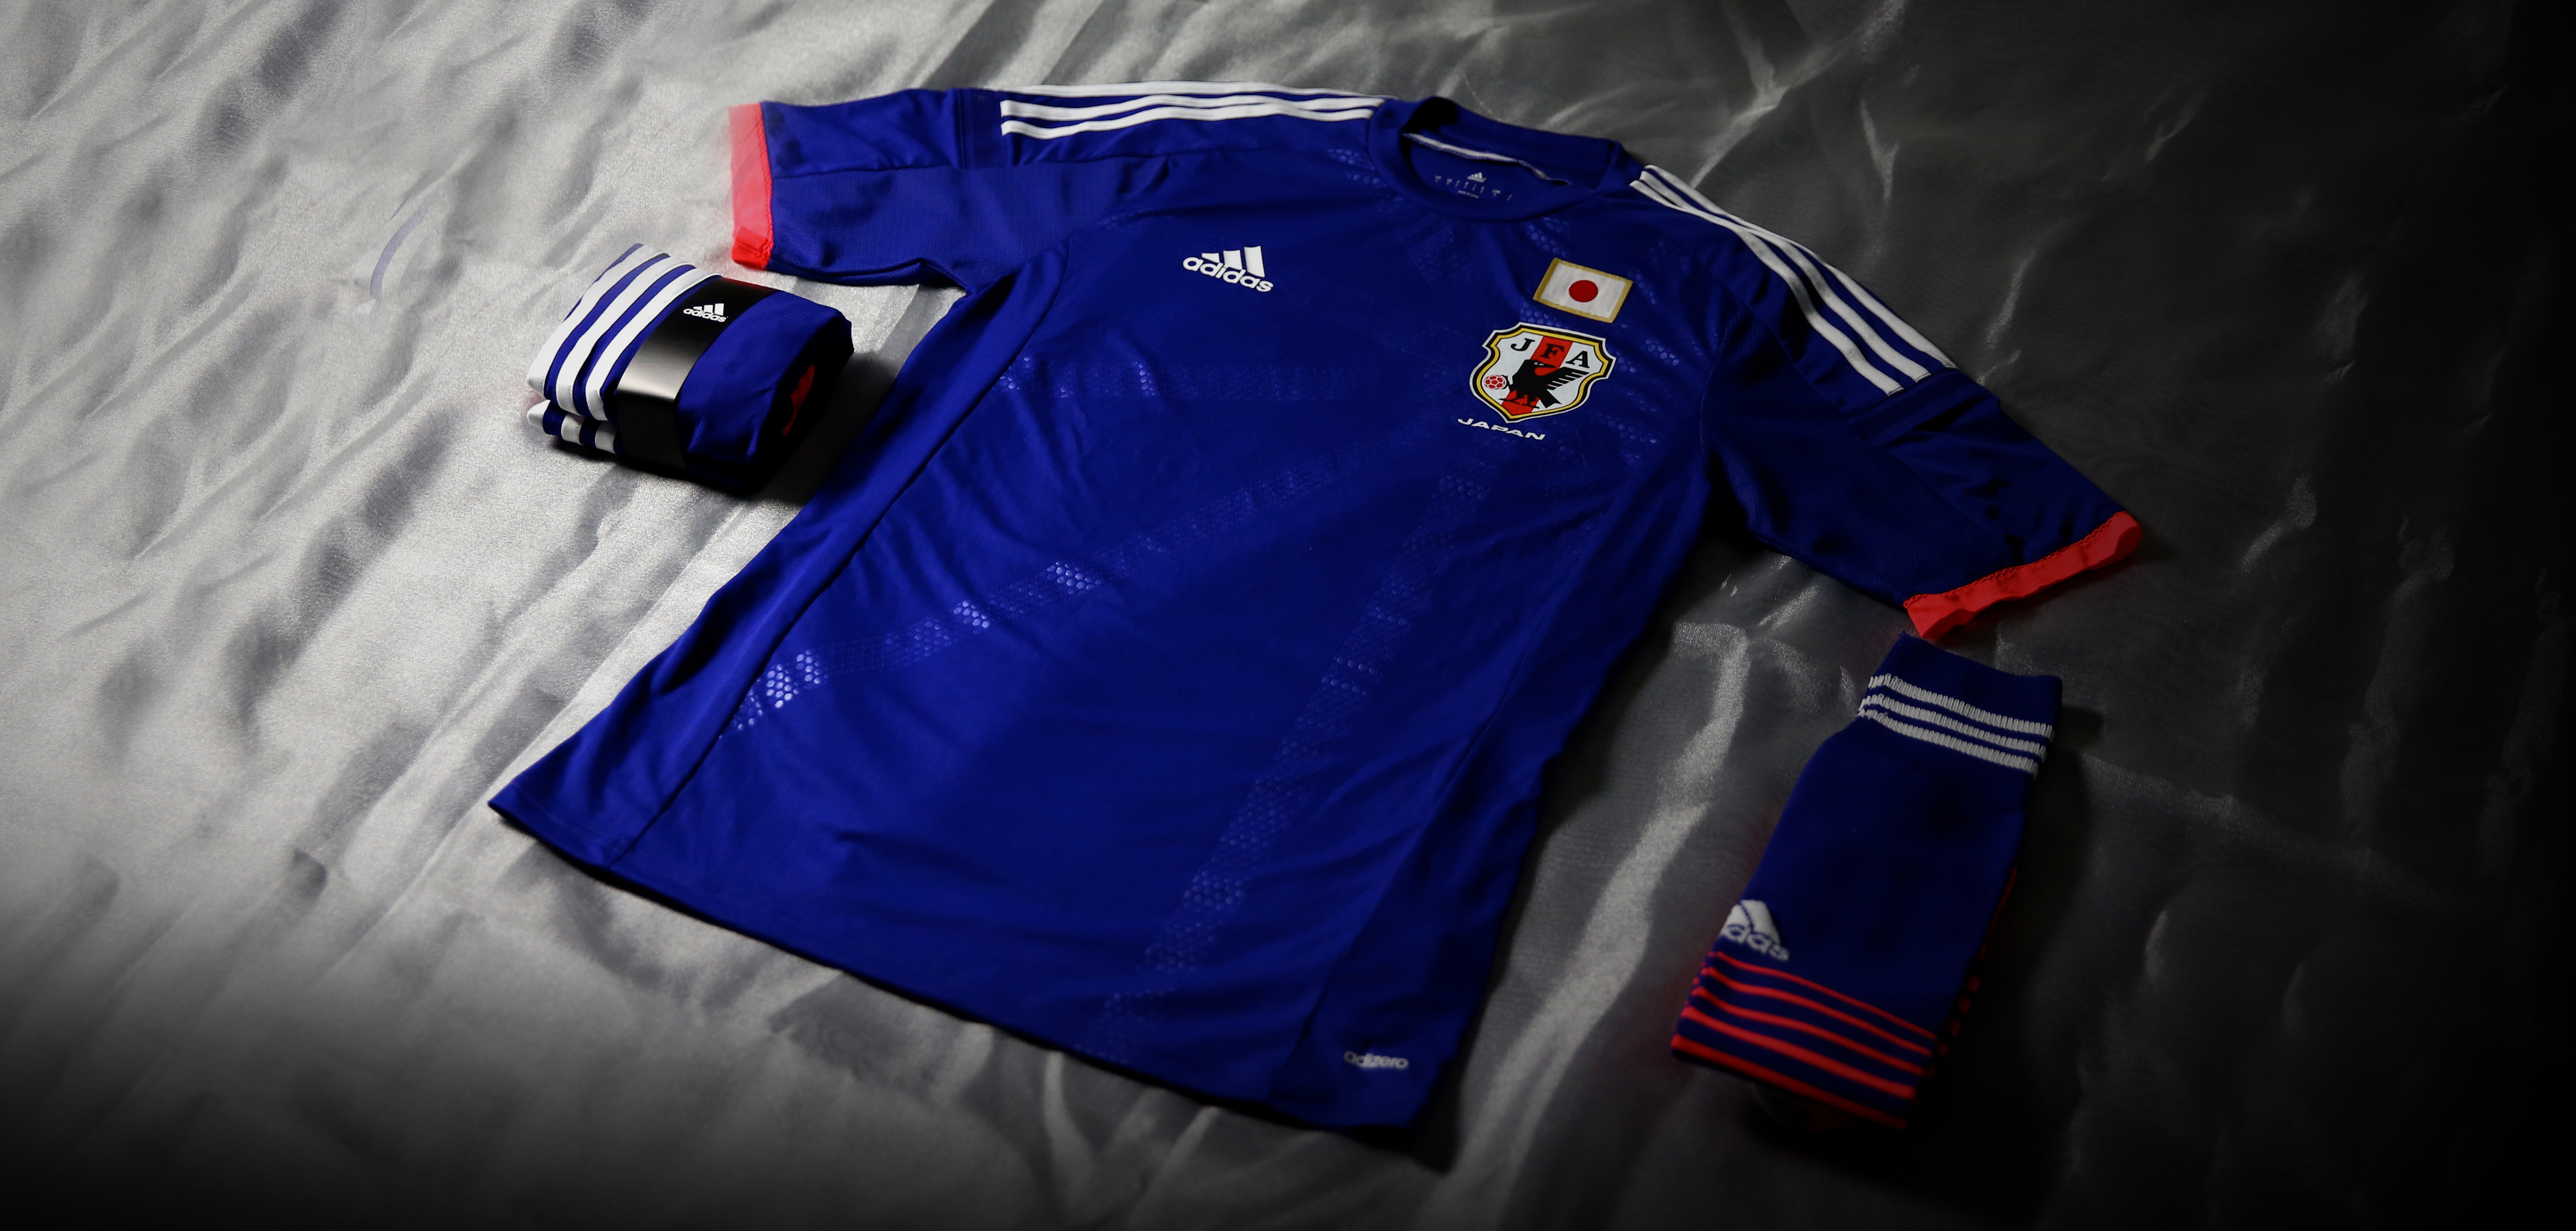 Adidas and the Japan Football Association (JFA) have unveiled the new  official home kit for the Japan National Football Team e793b32e5